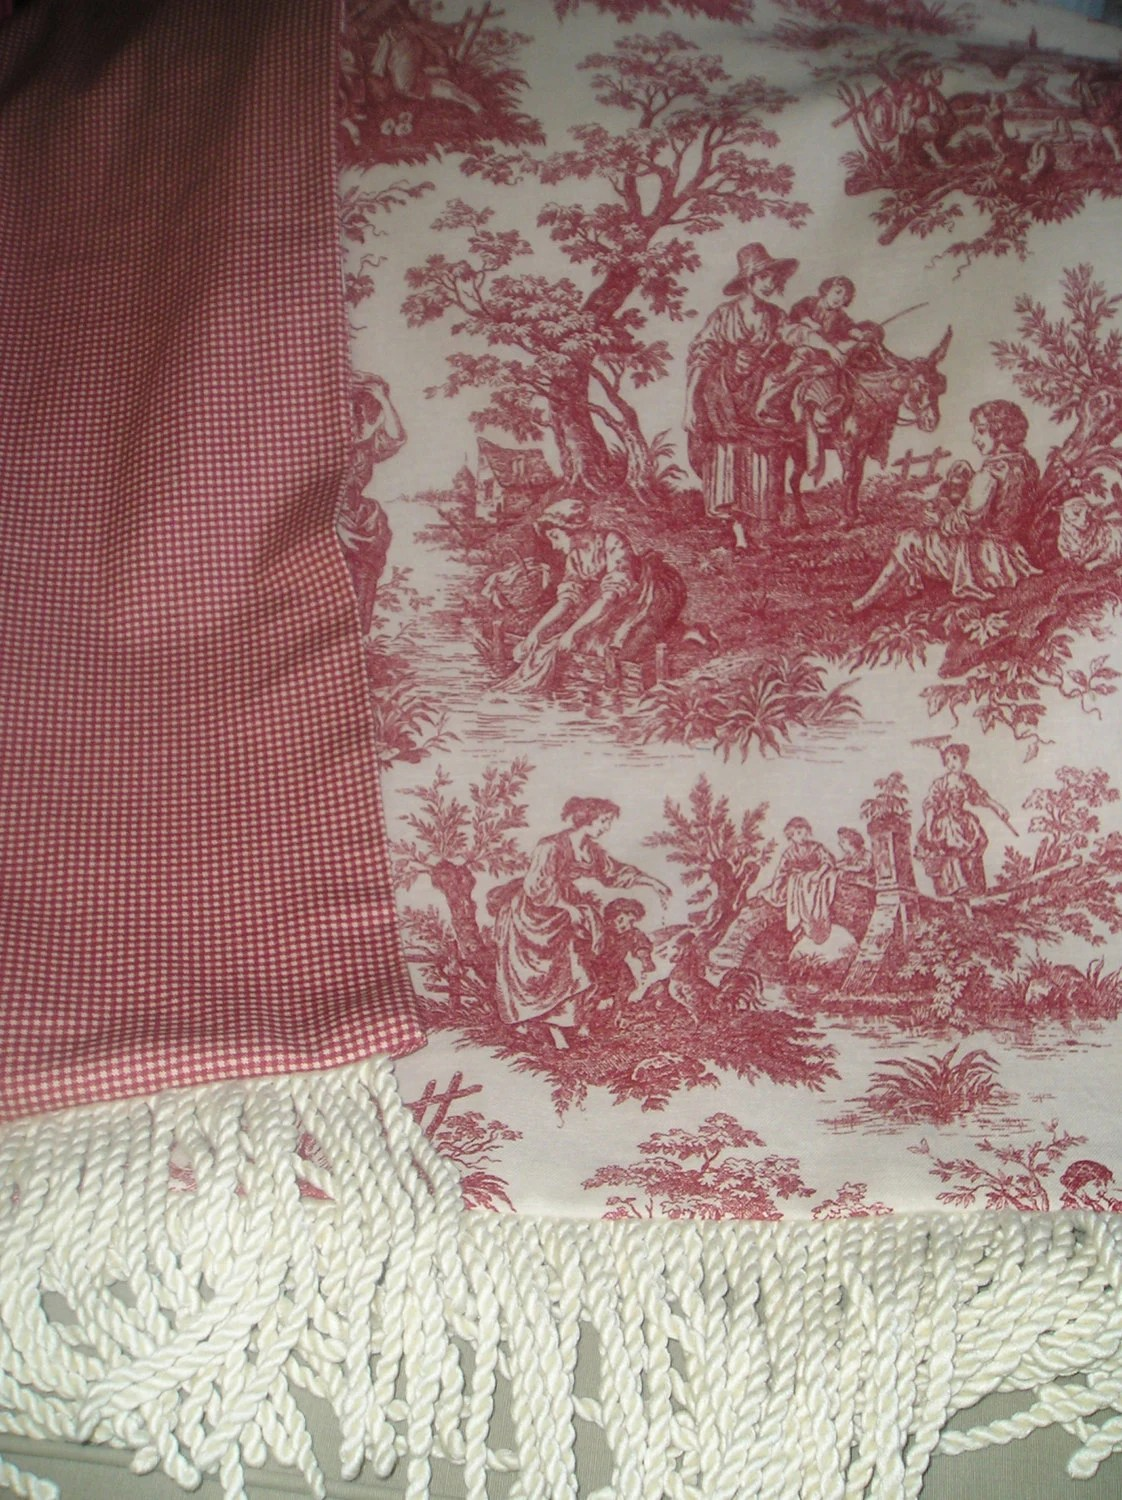 large throws for sofa kasala benson french country toile throw blanket in red and off white